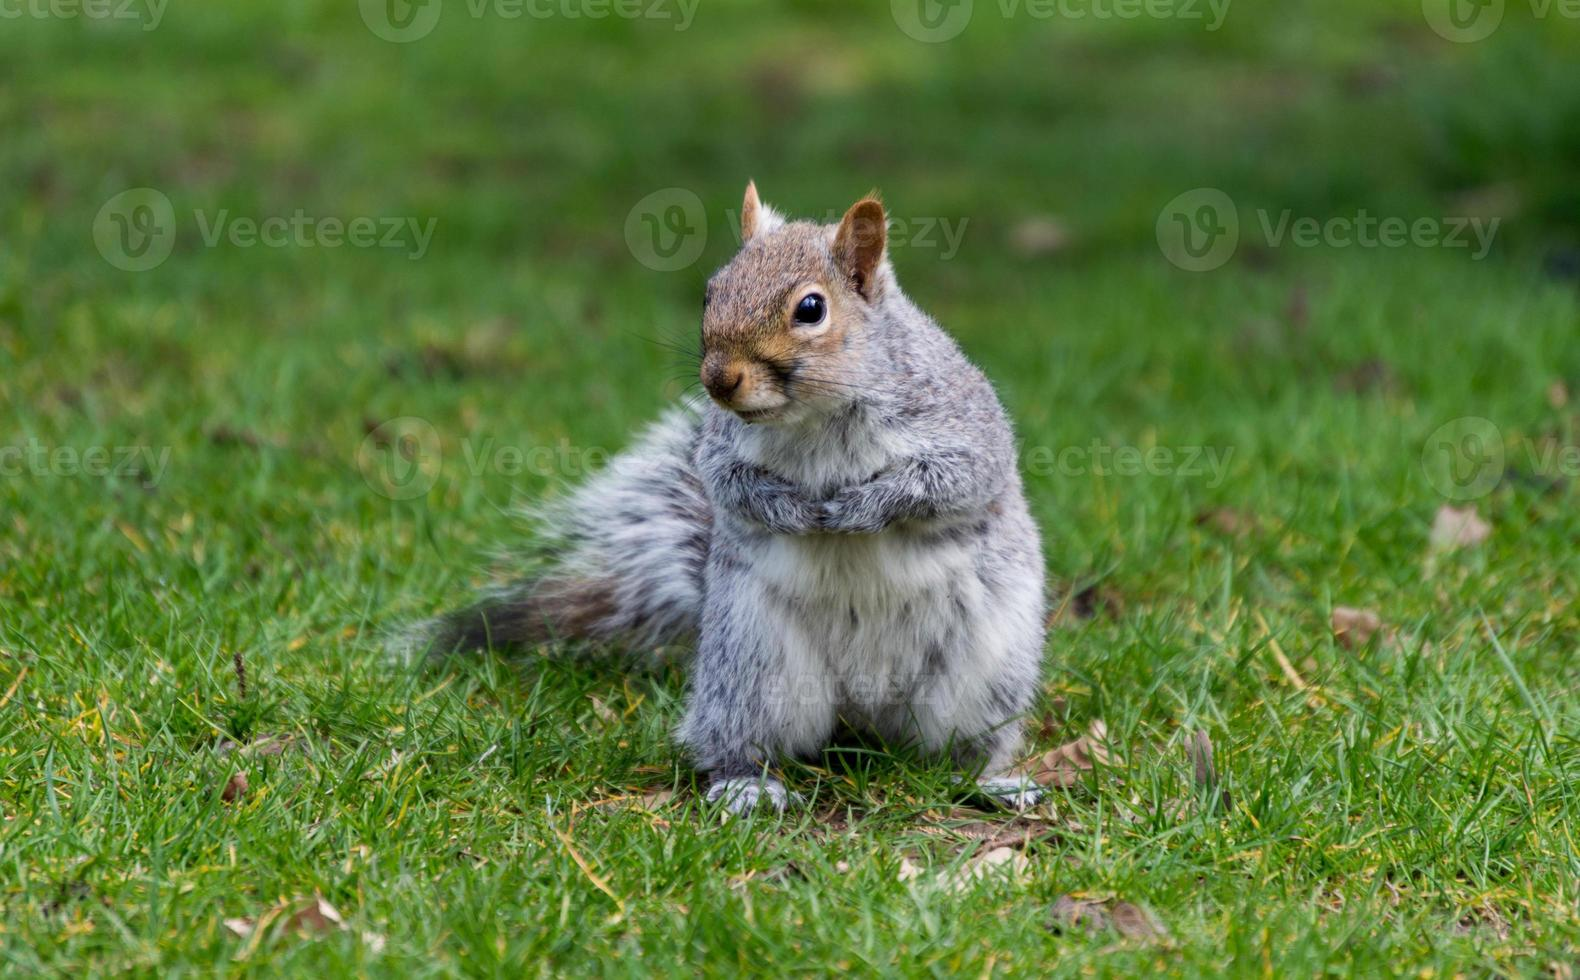 Cute grey squirrel standing on grass in a park photo